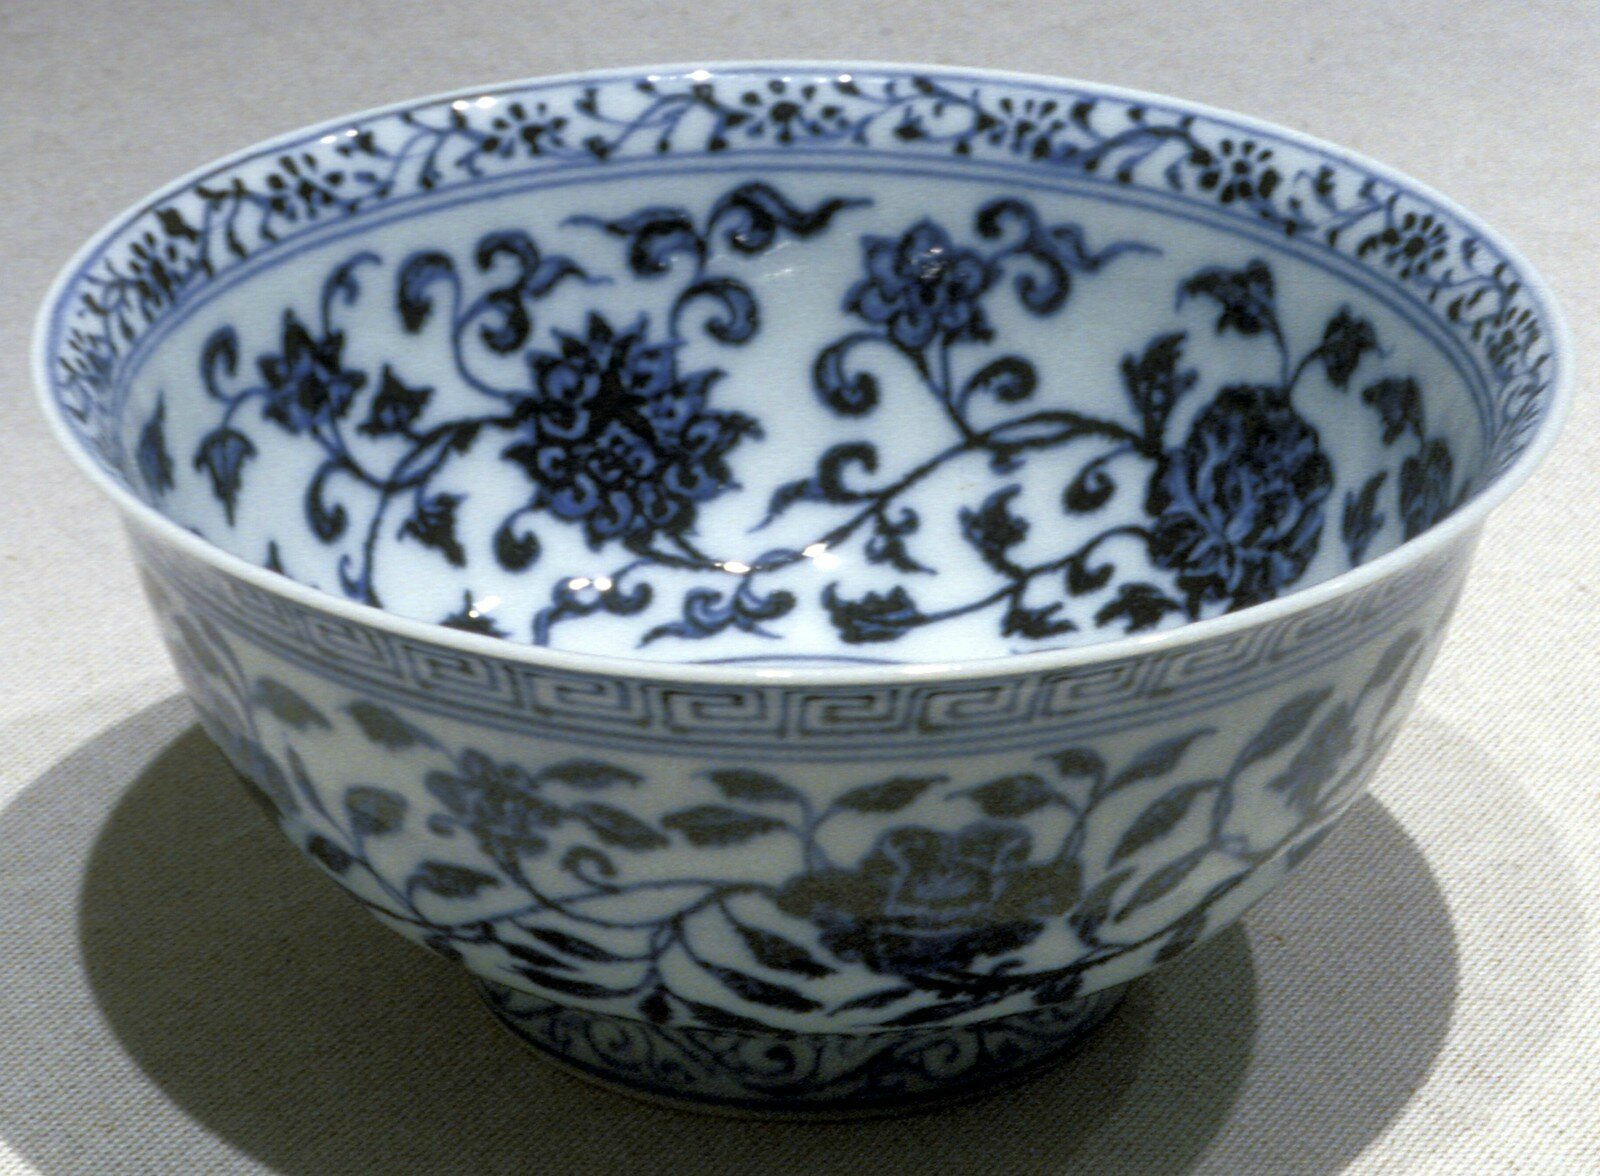 Bowl with stylized lotus and floral designs, Ming dynasty, early 1400s, Yongle period, porcelain with underglaze blue, 3 1/8 x 6 3/4 (diam.) in.. Gift of Mr. and Mrs. Eli Lilly. 60.102. Indianapolis Museum of Art © 2014 IMA